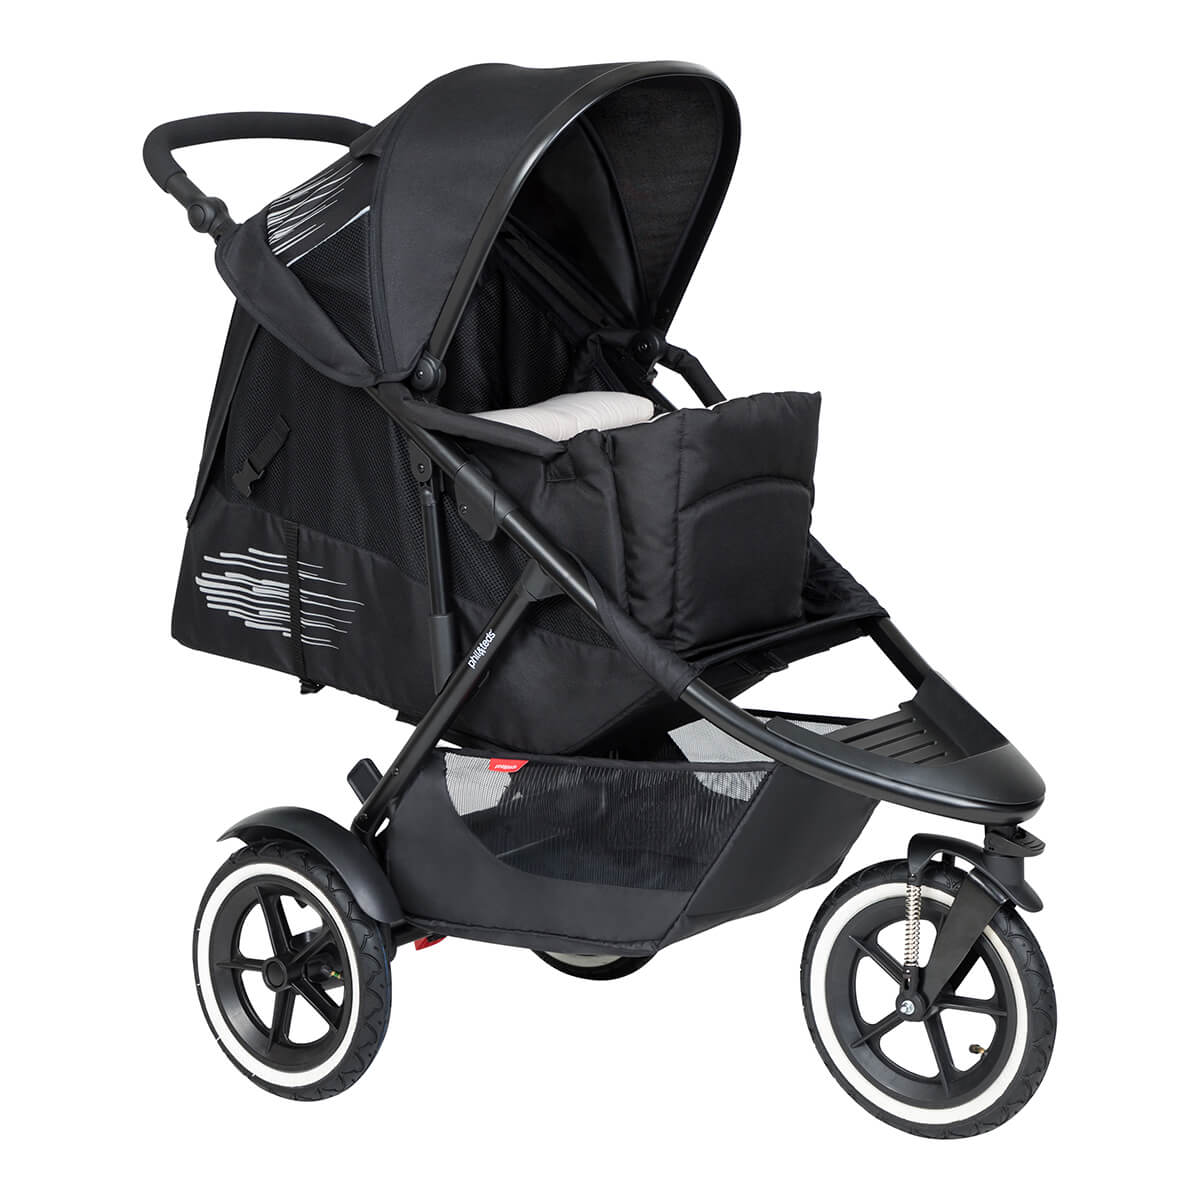 https://cdn.accentuate.io/4513463468128/19440099360952/philteds-sport-buggy-with-cocoon-full-recline-v1626486660654.jpg?1200x1200